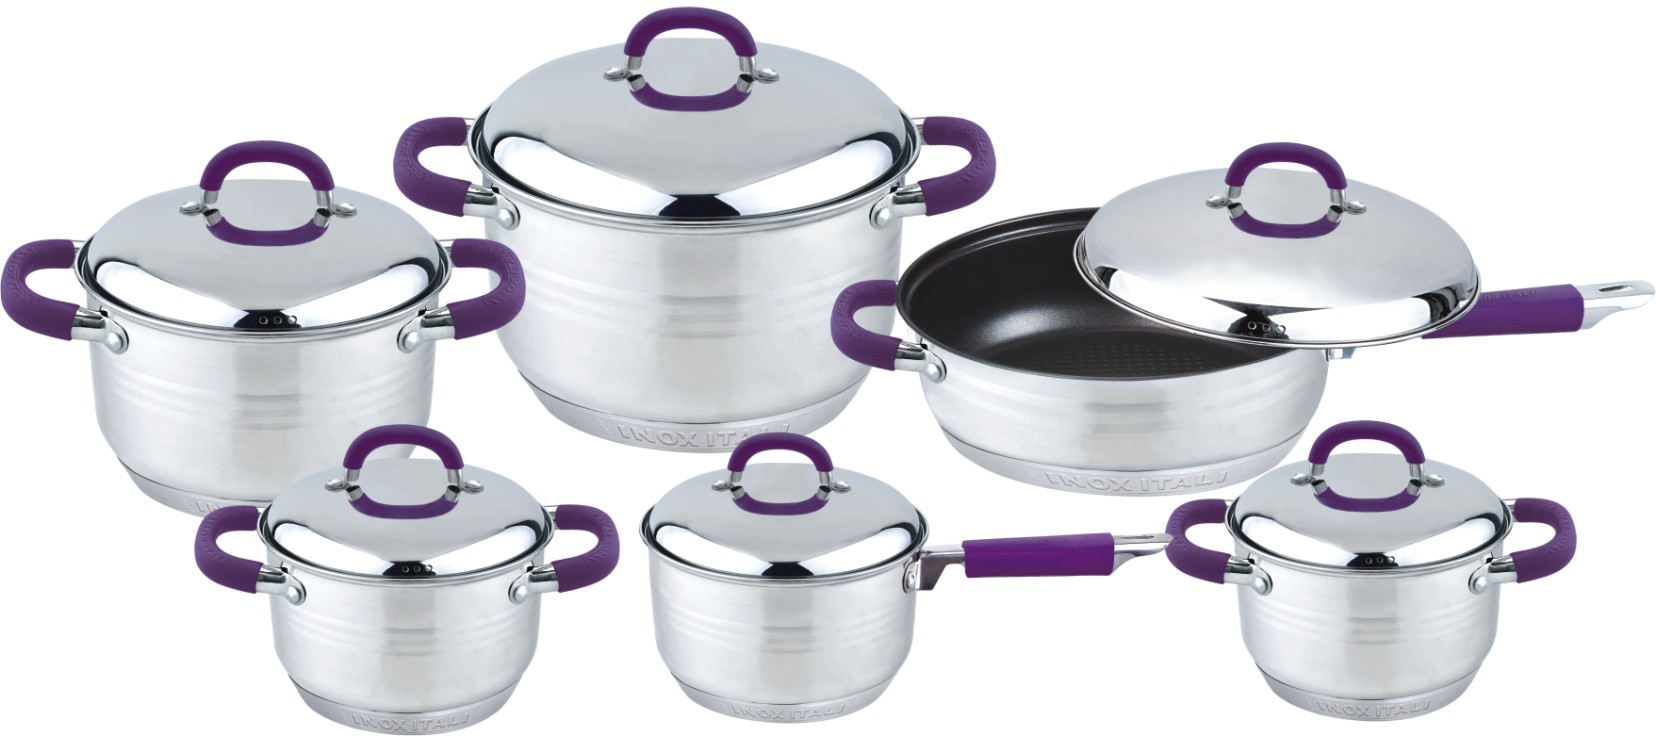 Big silicone handle 12pcs cookware set